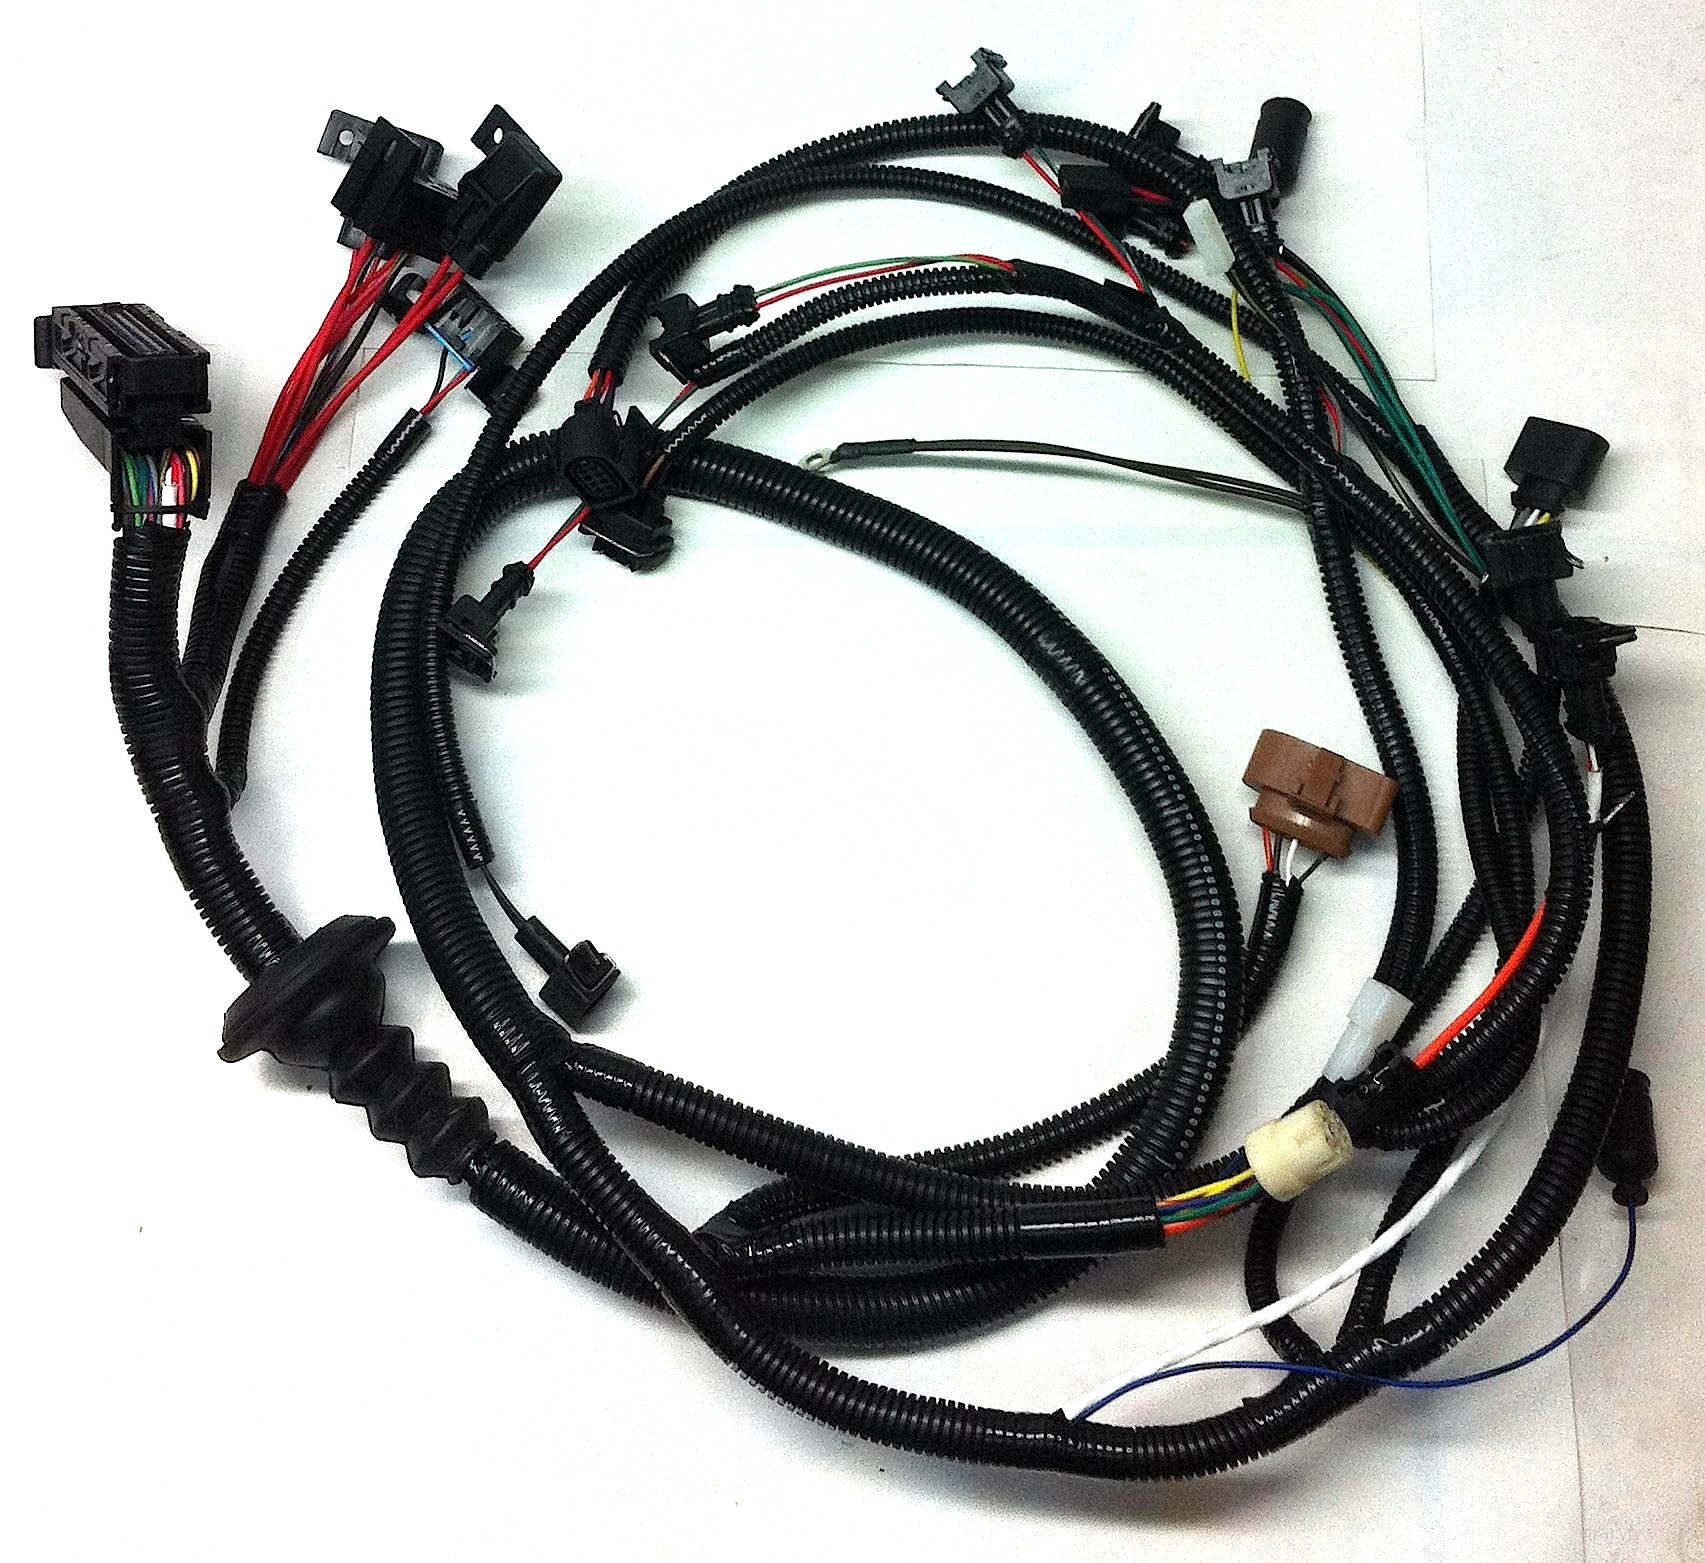 Wiring_Harness_2LR 2lr tiico conversion wiring harness foreign auto & supply, inc subaru engine wiring harness at panicattacktreatment.co